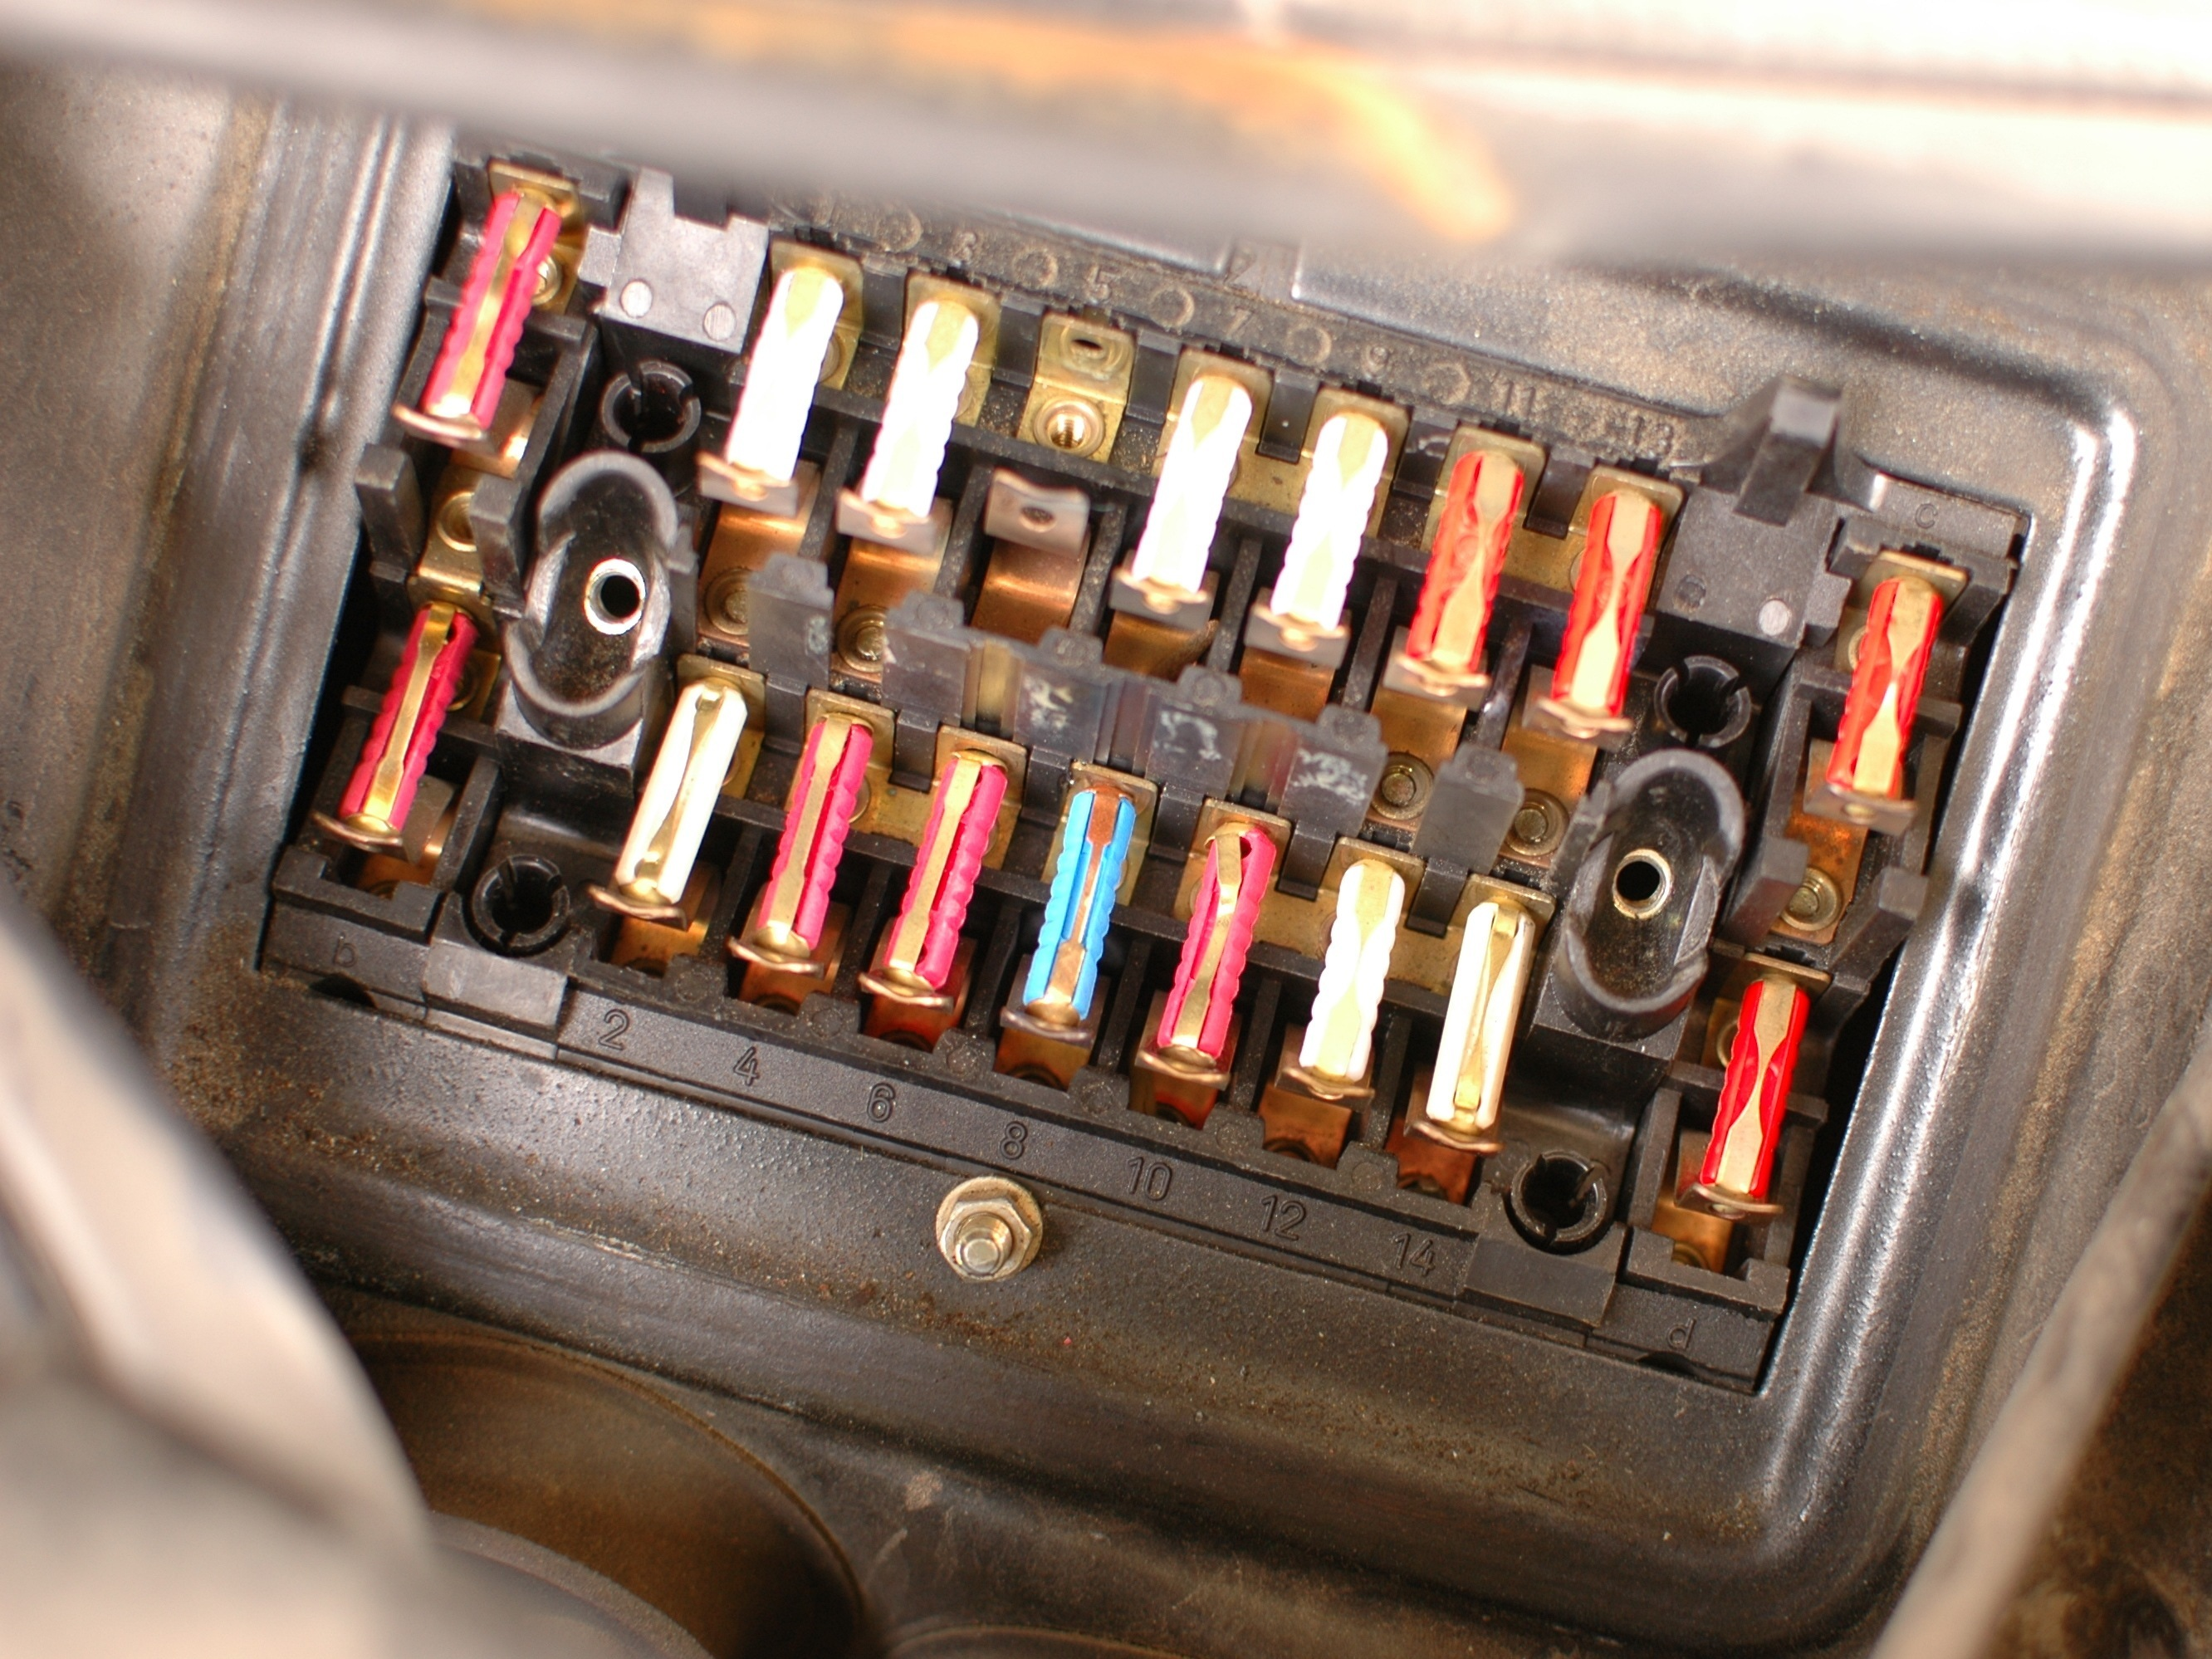 AfYAfmoCaMTVU2ap how to check mercedes w123 fuses ifixit 1984 mercedes 380sl fuse box location at nearapp.co